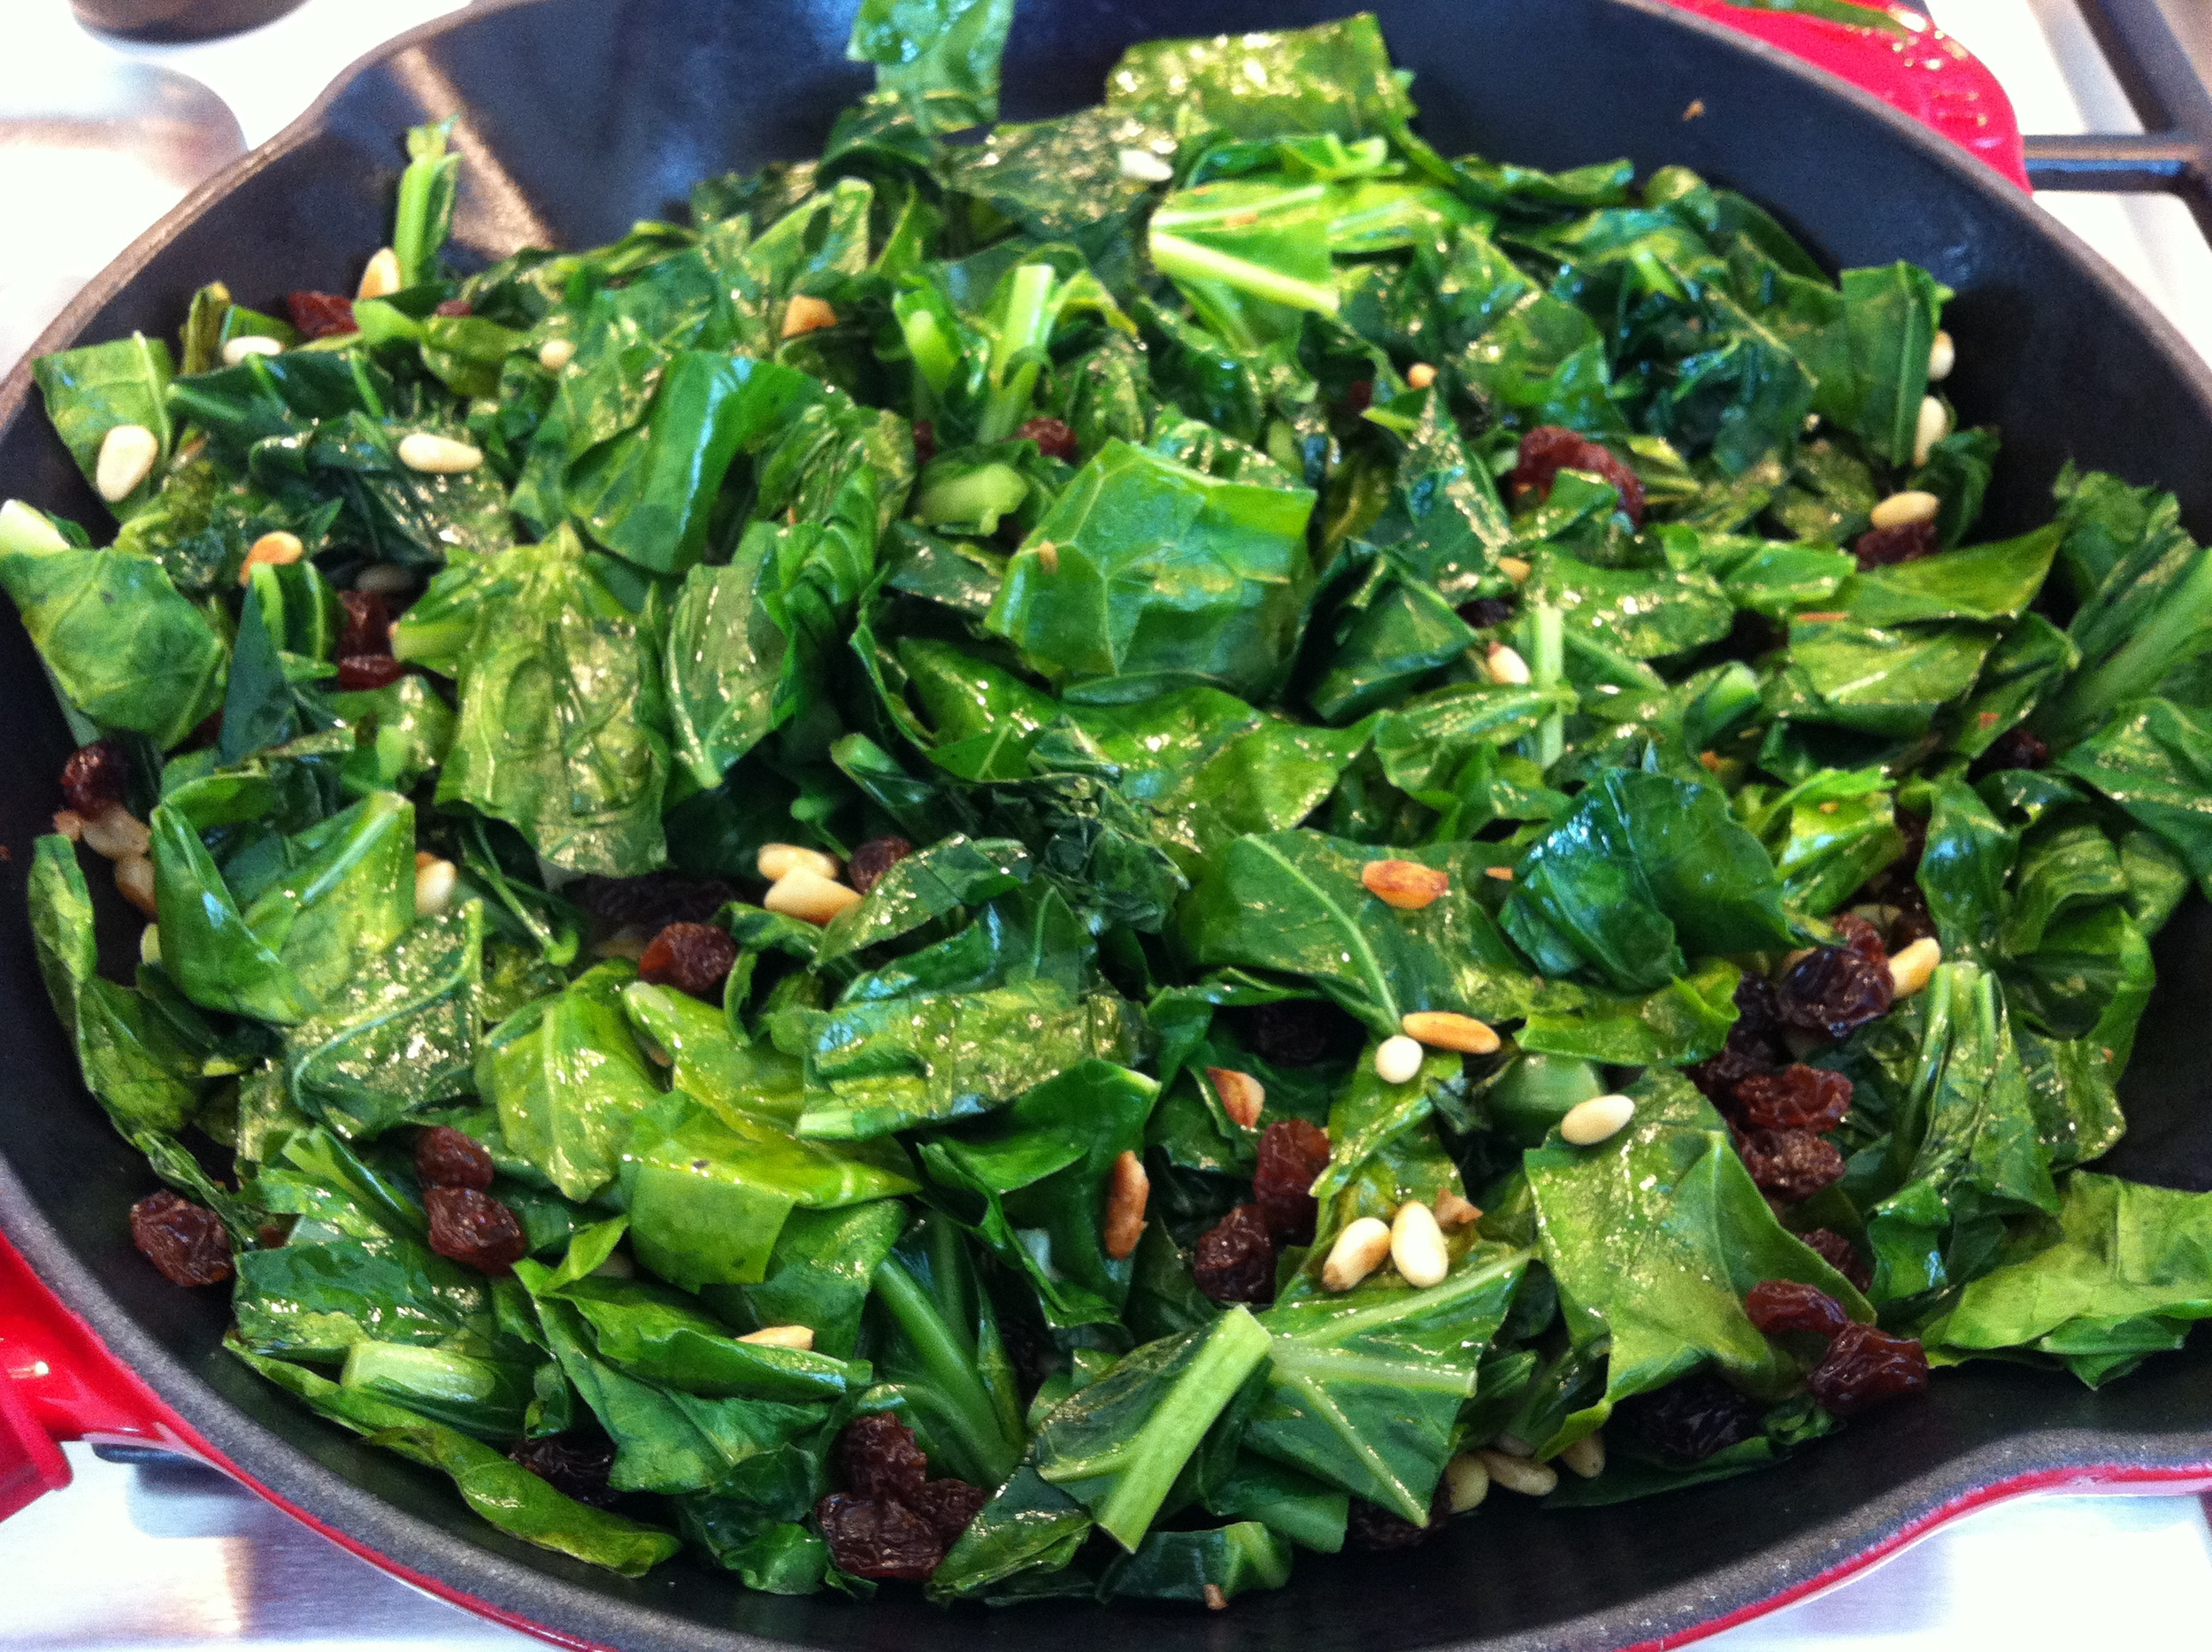 These collard greens are vegan and sweet and delicious.